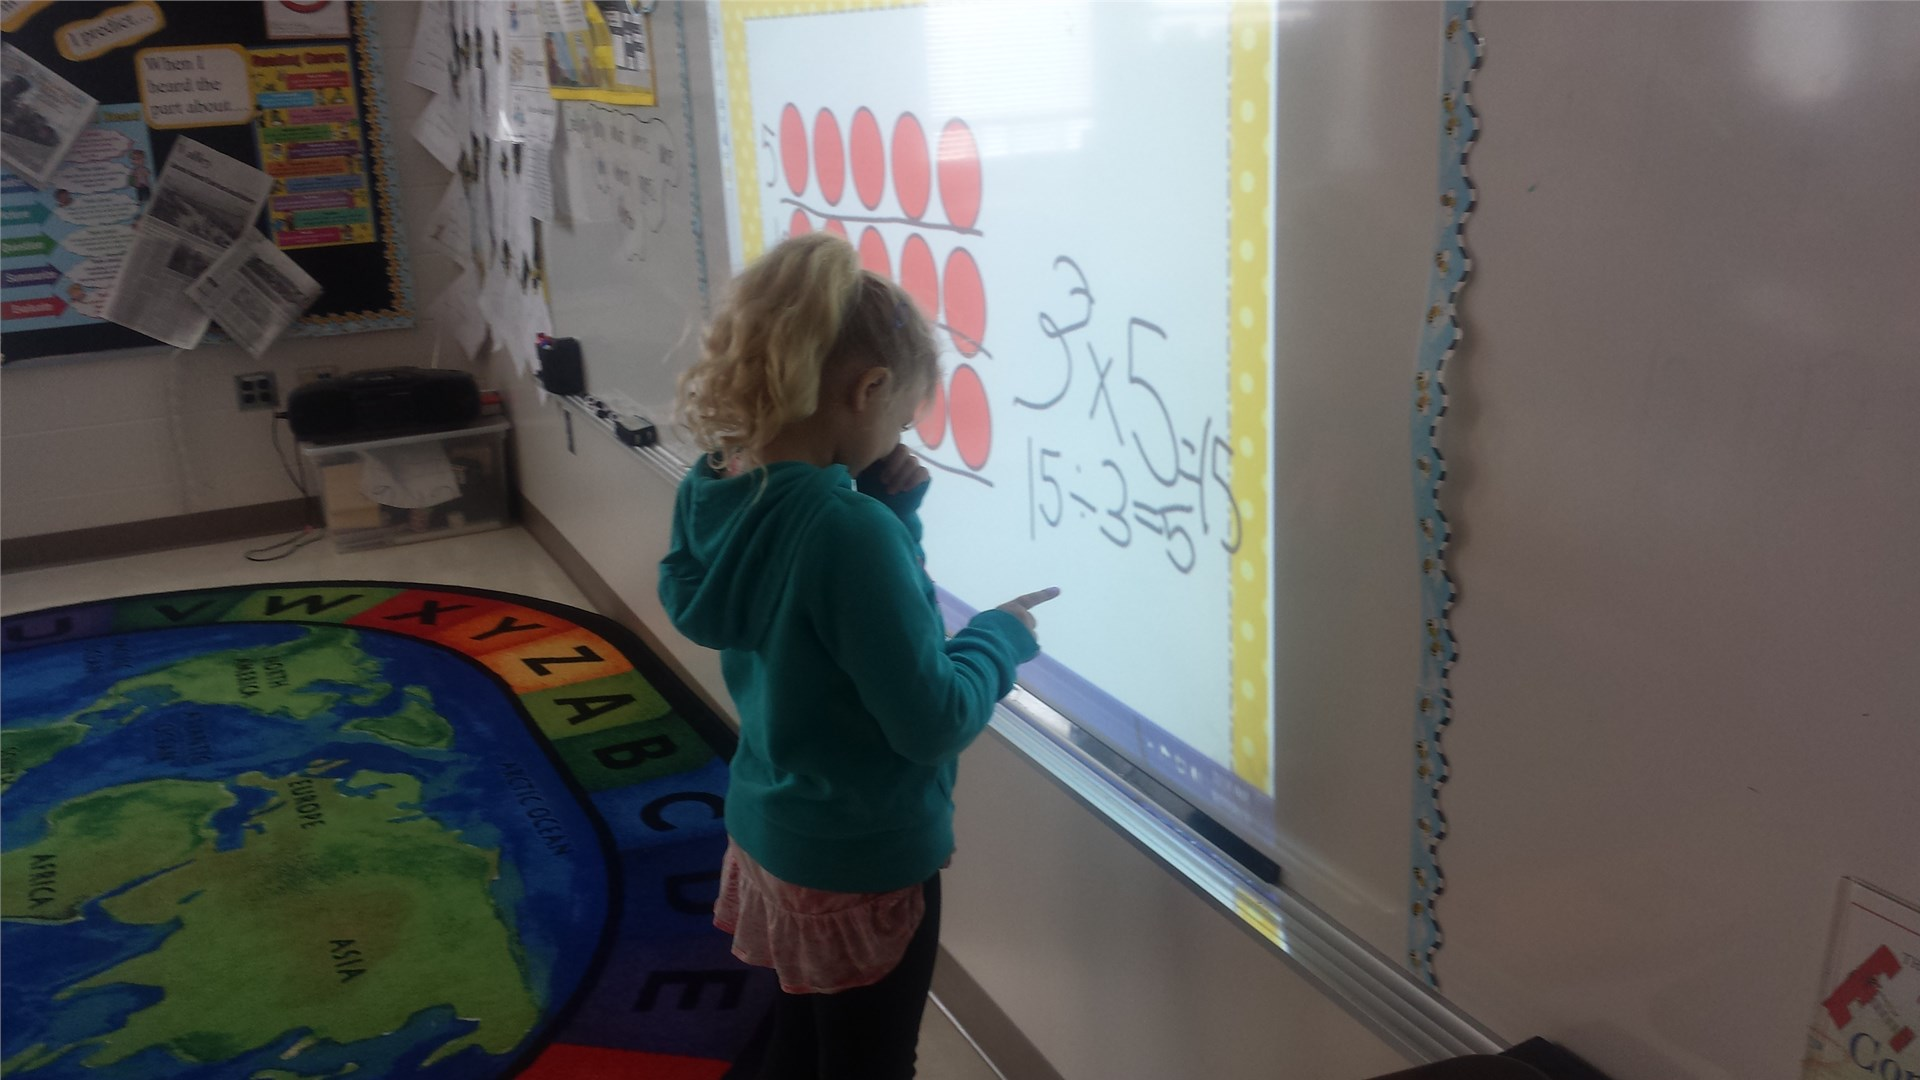 Working on the Smartboard